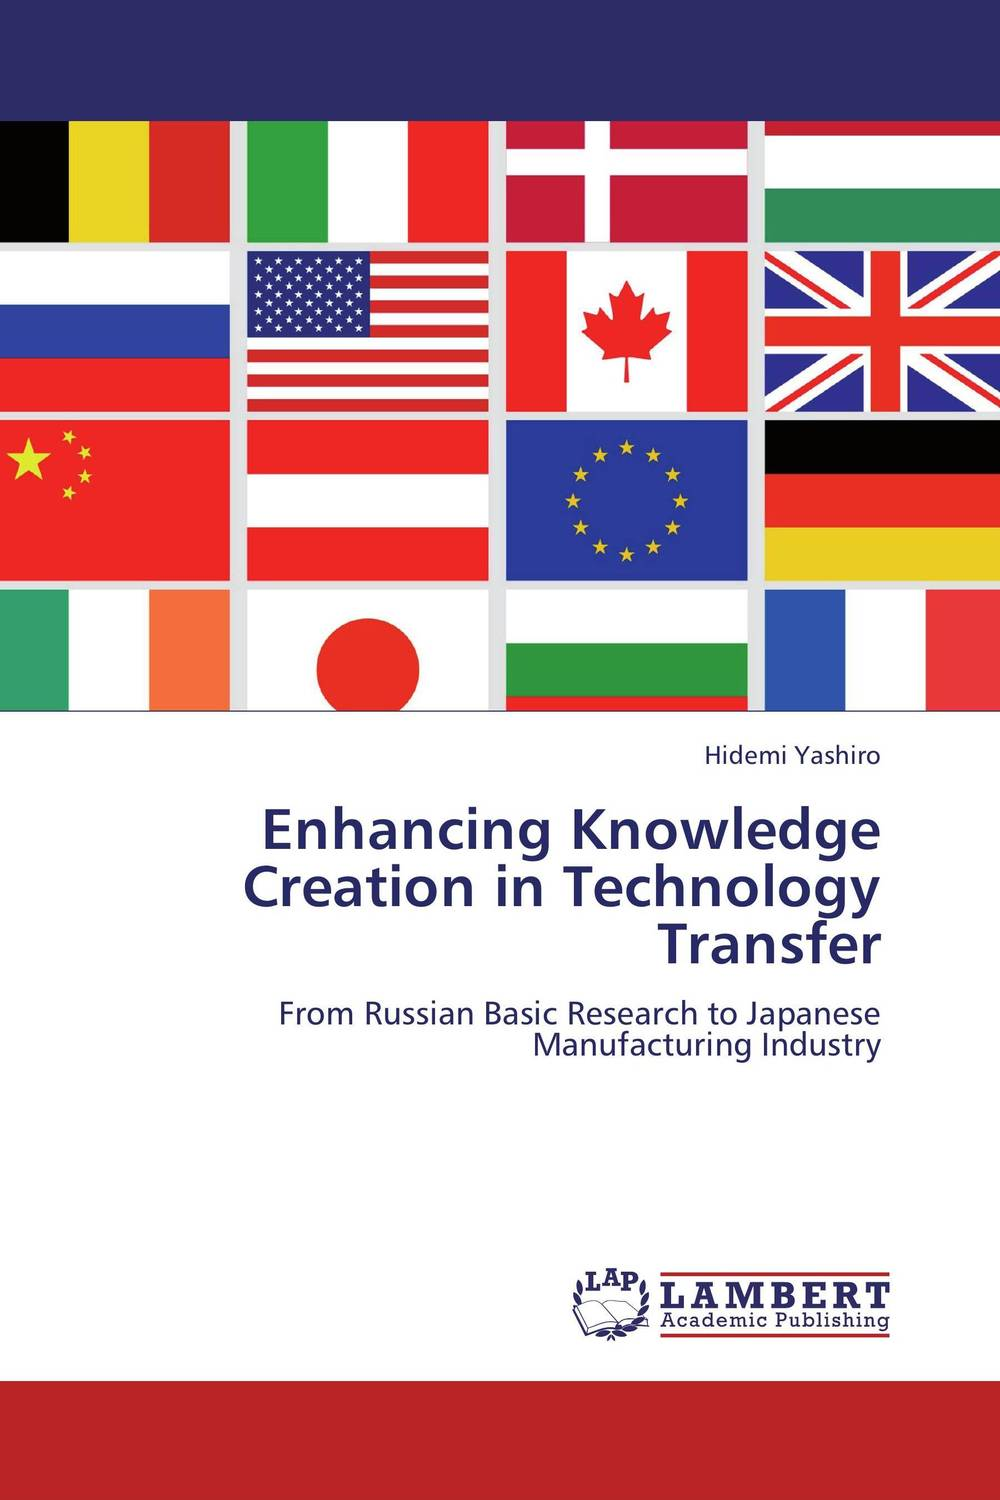 Enhancing Knowledge Creation in Technology Transfer father's role in enhancing children's development